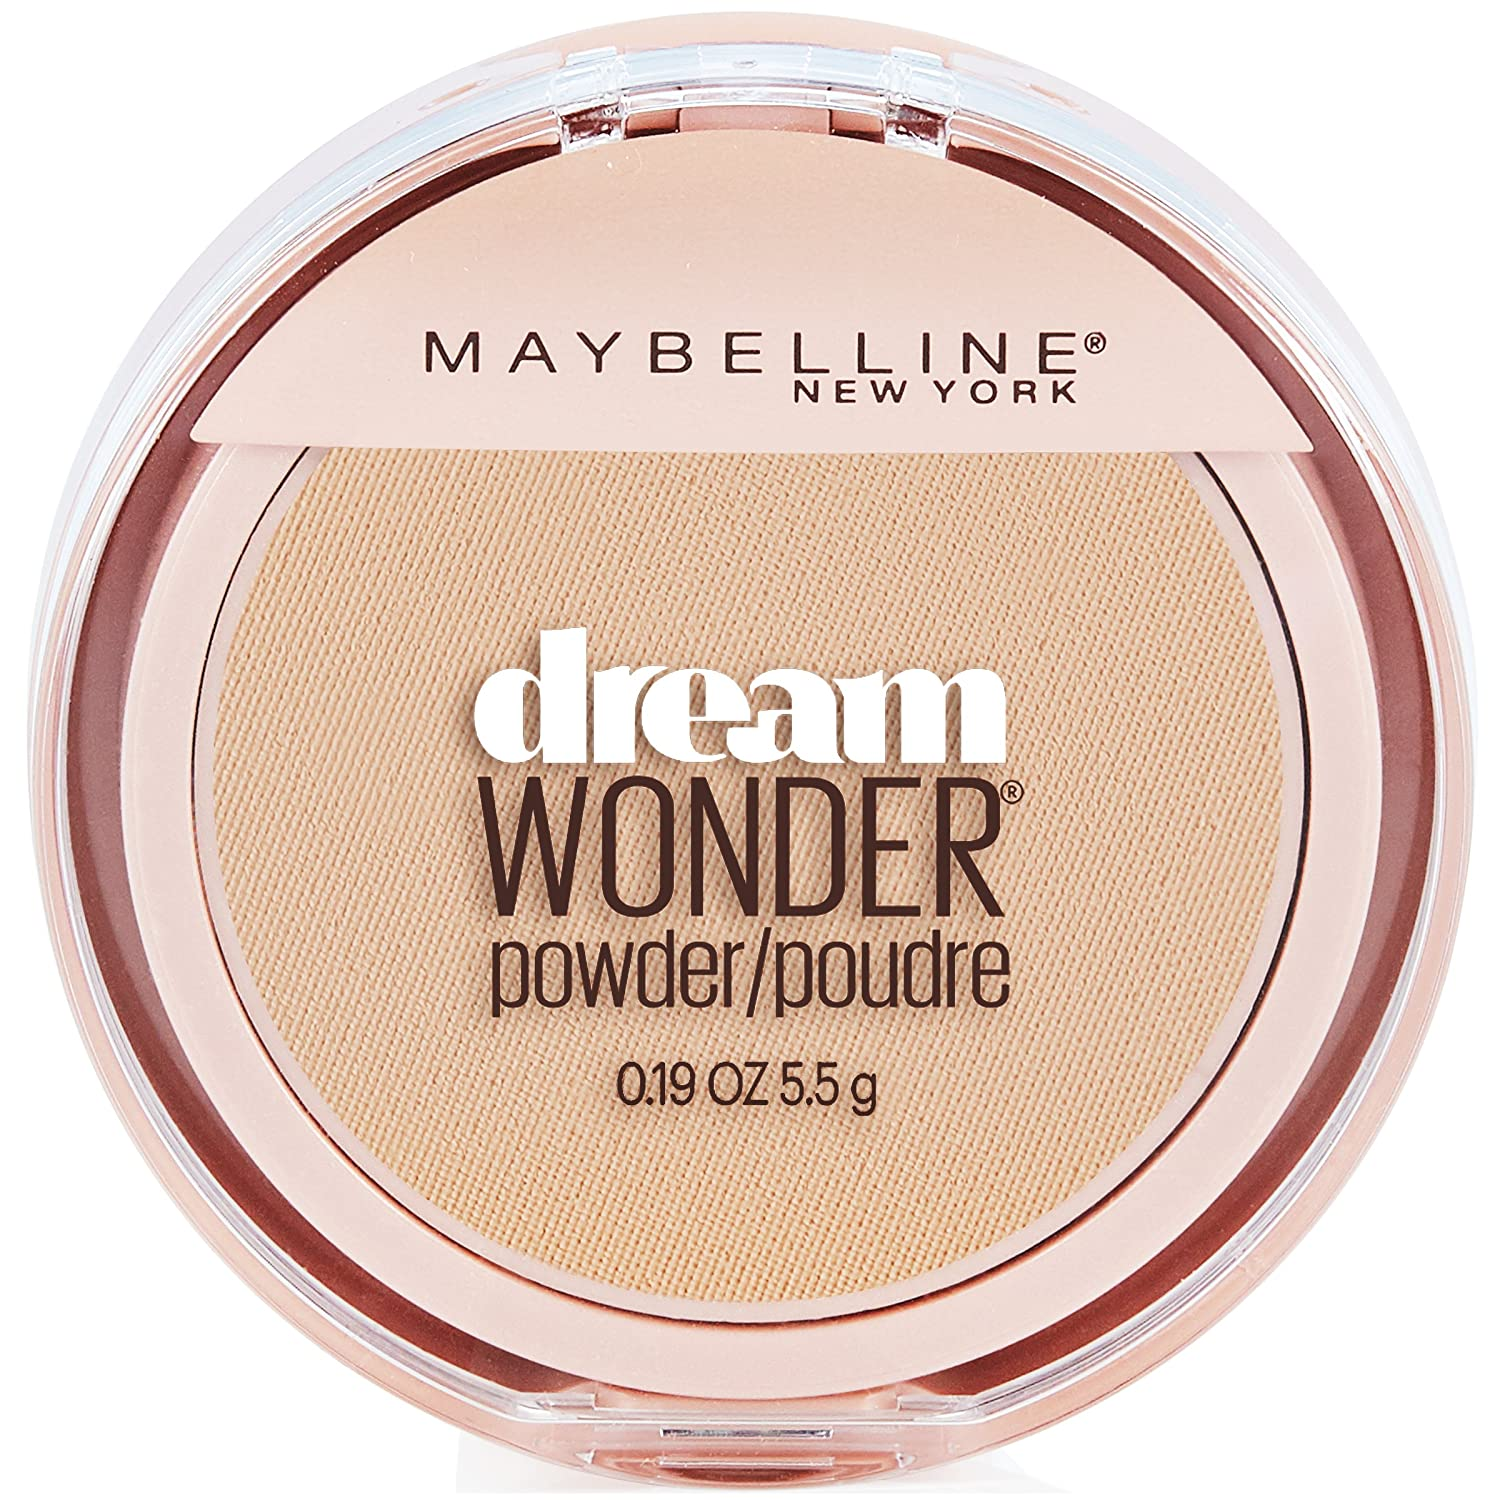 Maybelline New York Dream Wonder Powder, Natural Beige, 0.19 Ounce 70 Natural Beige